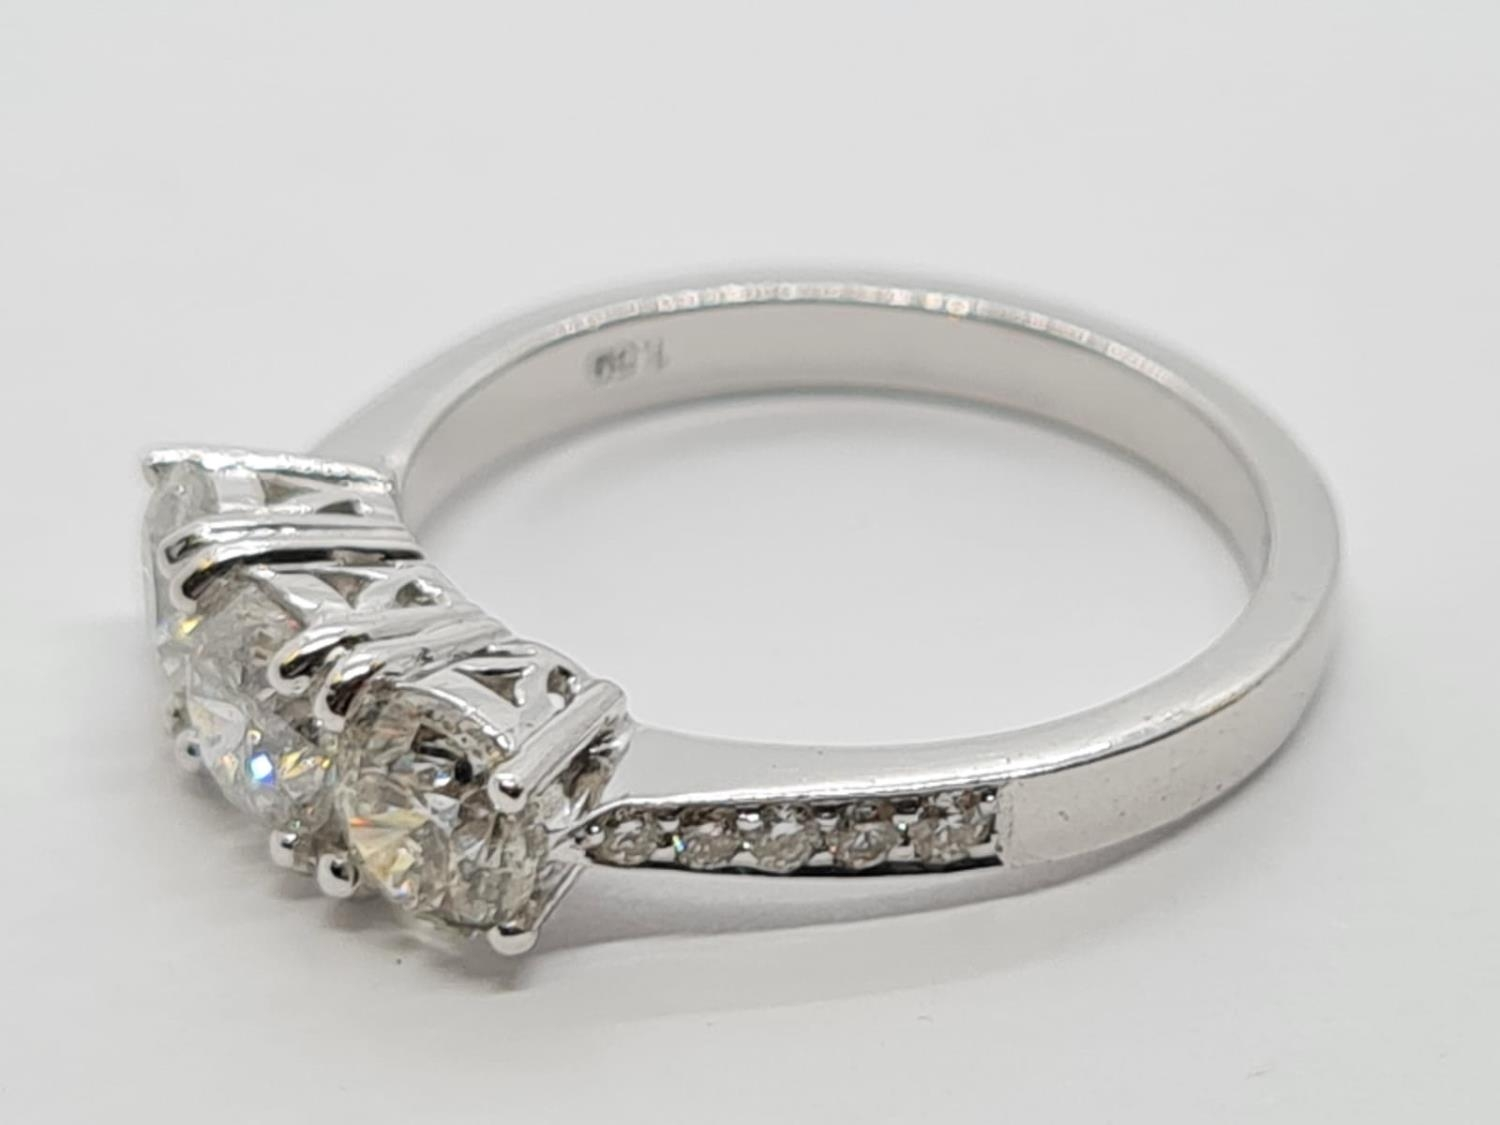 18ct White Gold with Trilogy set of 1.5ct Diamonds and further encrusted diamonds on the shoulder. - Image 3 of 6